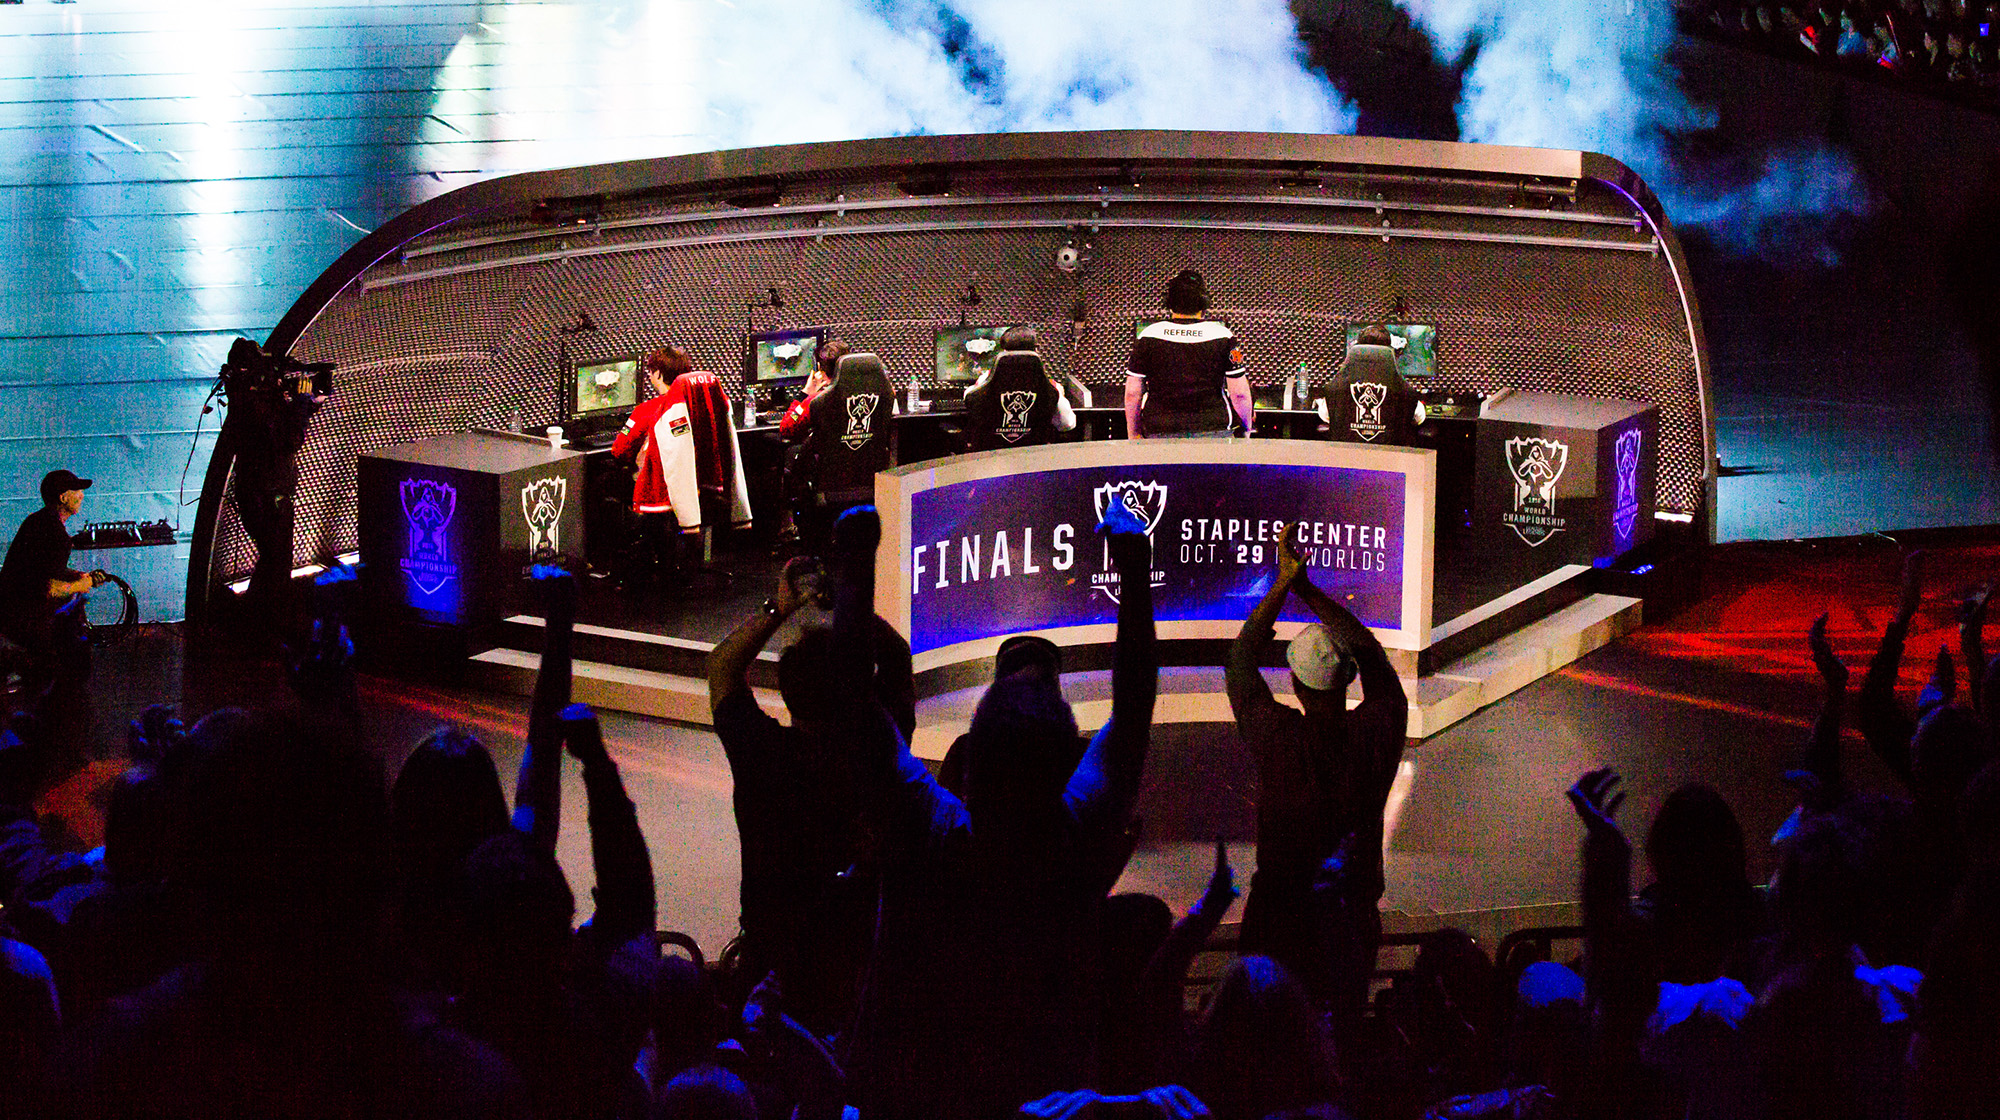 Honda's New Tactic for Attracting First-Time Car Buyers: Esports